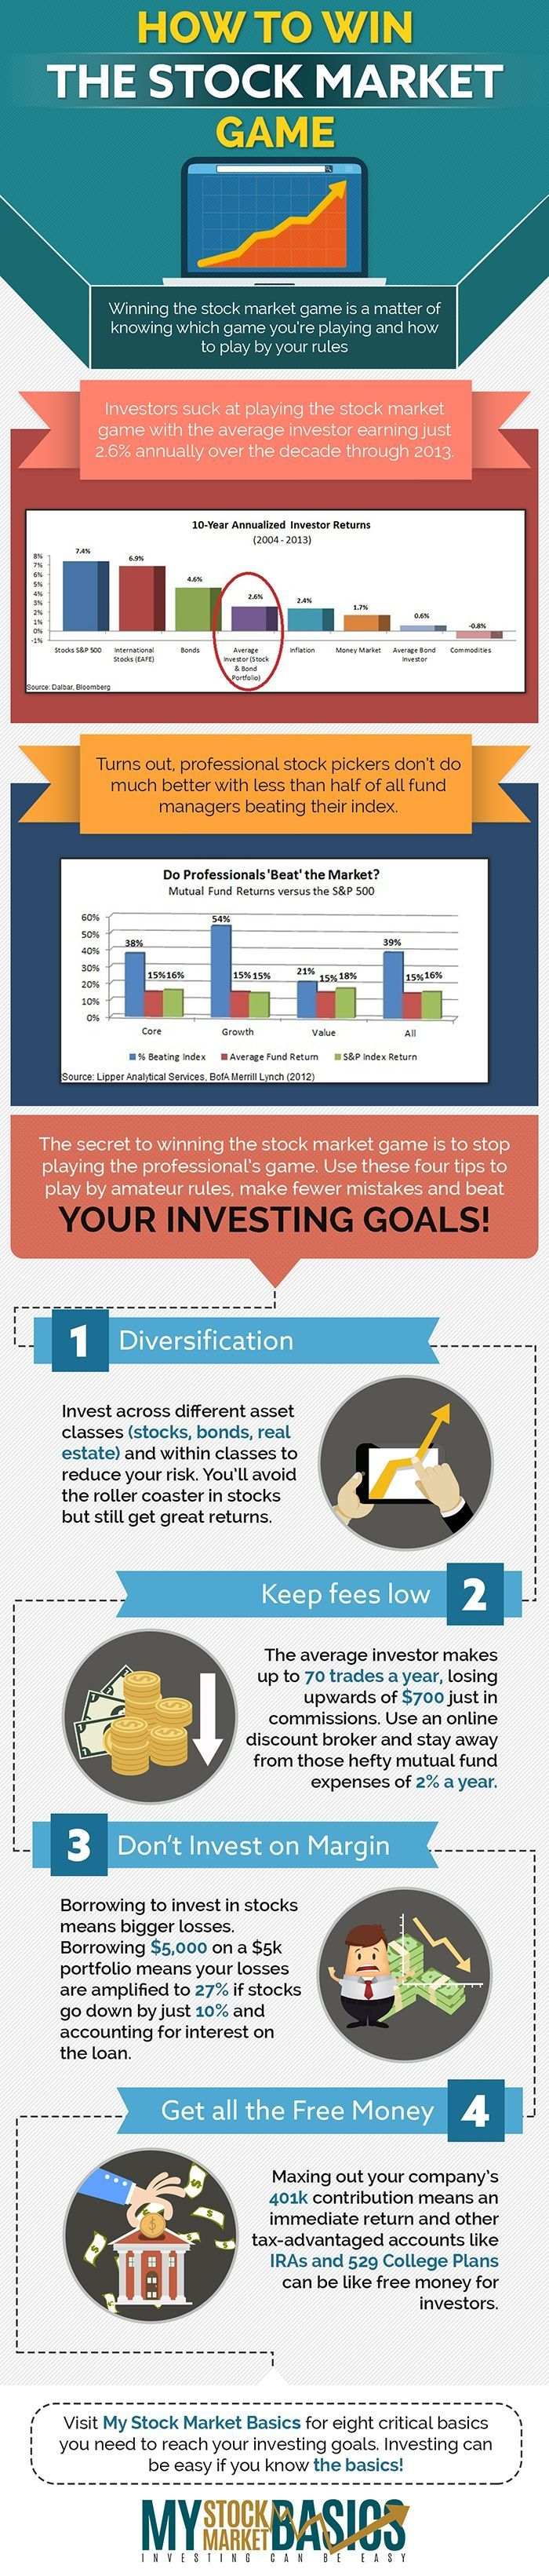 Whether You Want To Get Started With Tips On The Market, Or Want In Depth Training On Personal Finance And Stocks, I Have Amazing Guides And Articles For You To Learn From. If Your Goal Is To Make Extra Money From Dividends, Or To Grow Your Retirement, Learning To Invest In Stocks Is A Great Place To Start. The Best Products, People, Books, And Resources For Learning How To Invest In Stocks.